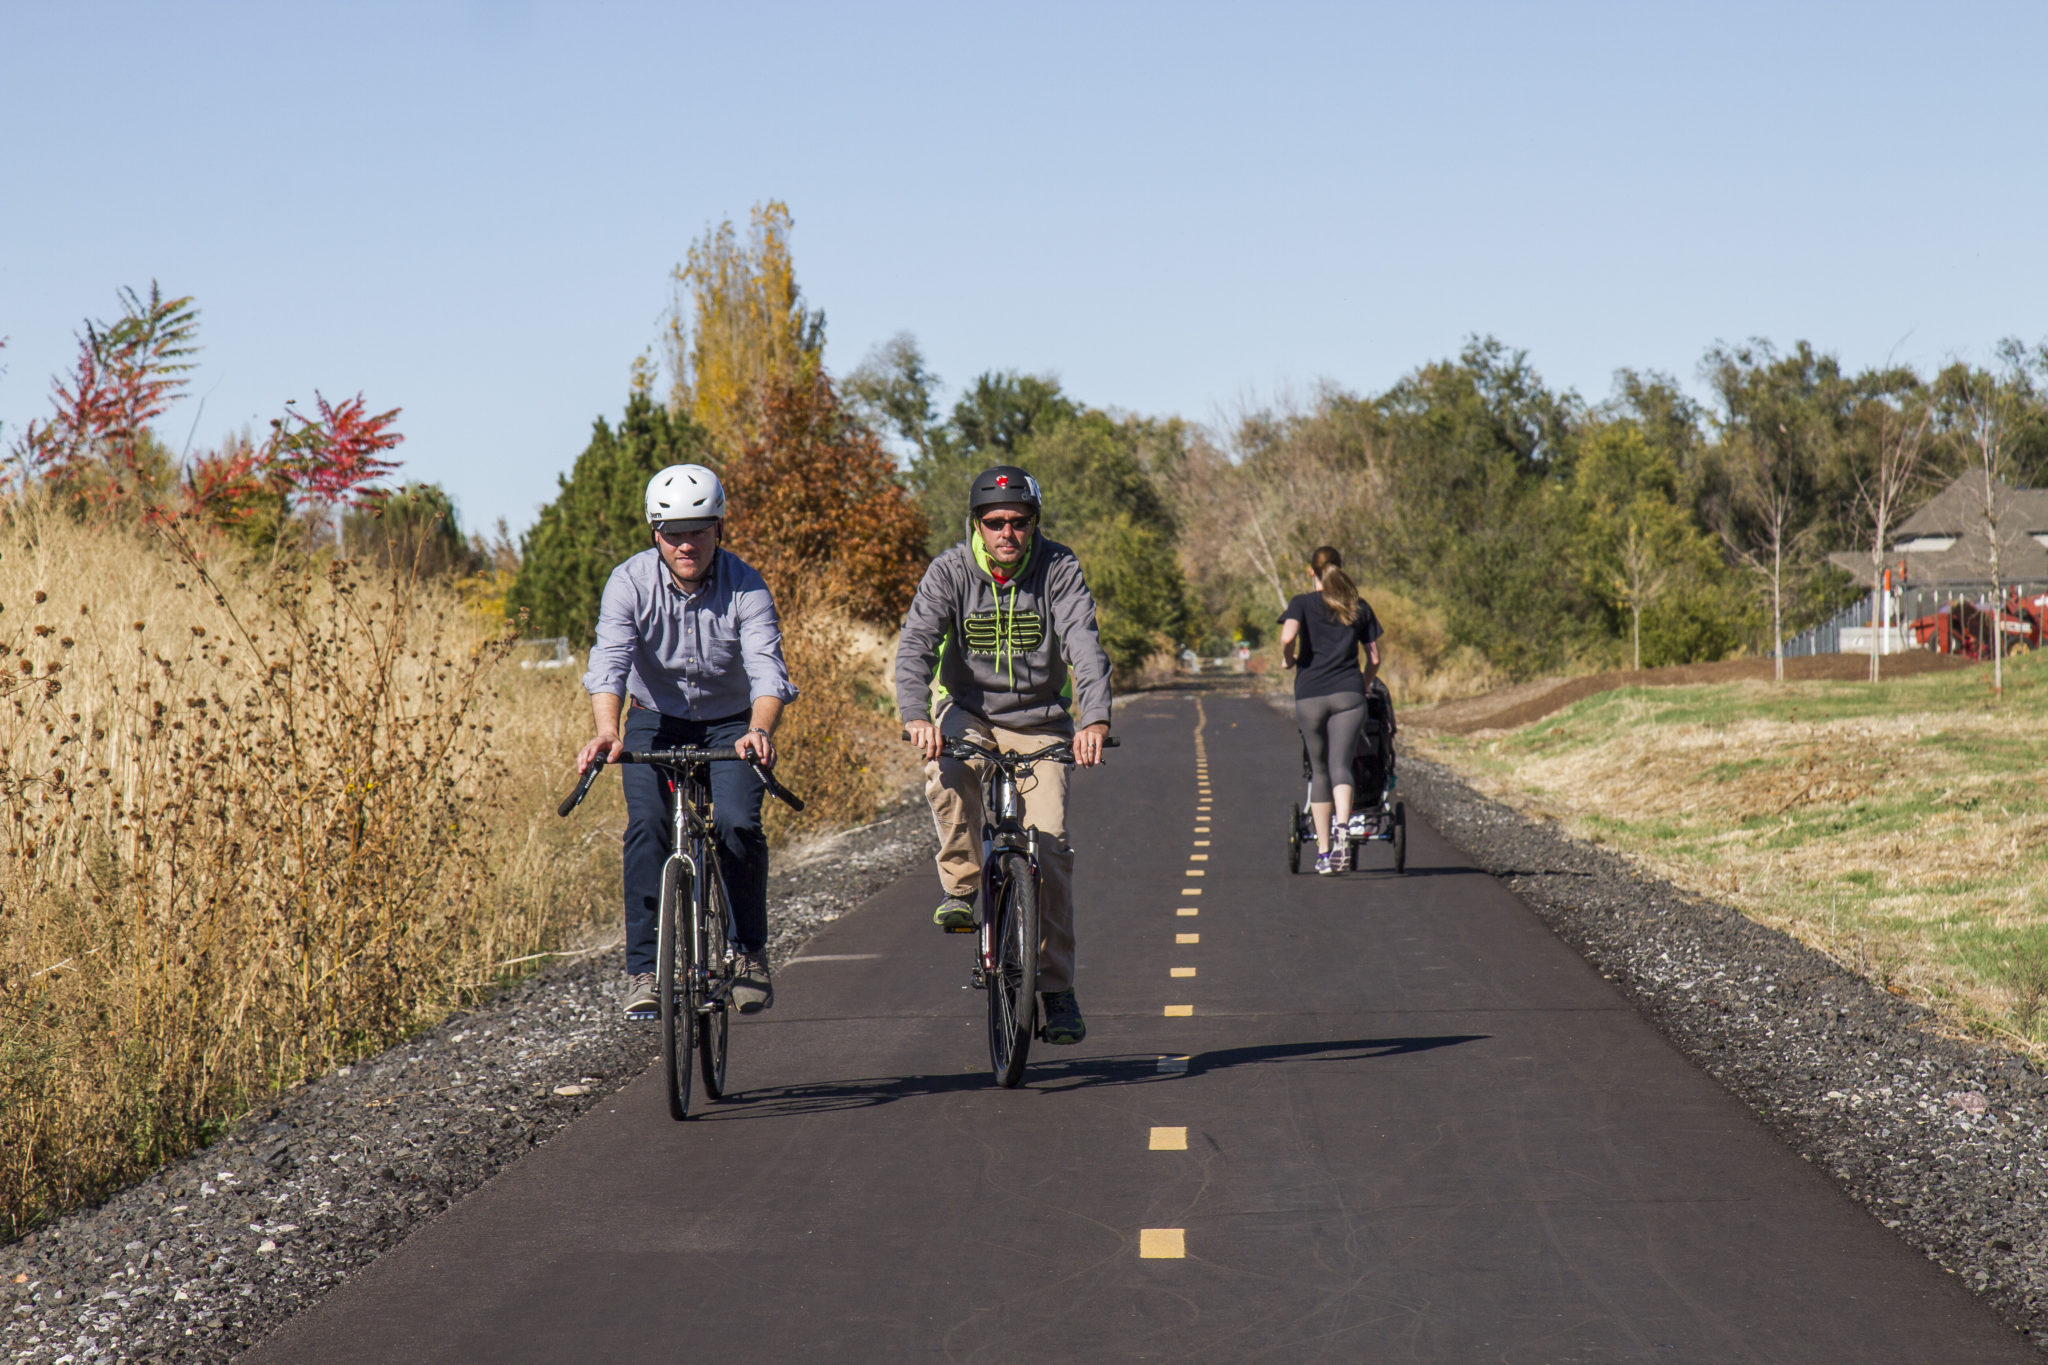 Bike Ride To Celebrate Completion Of Golden Spoke Network